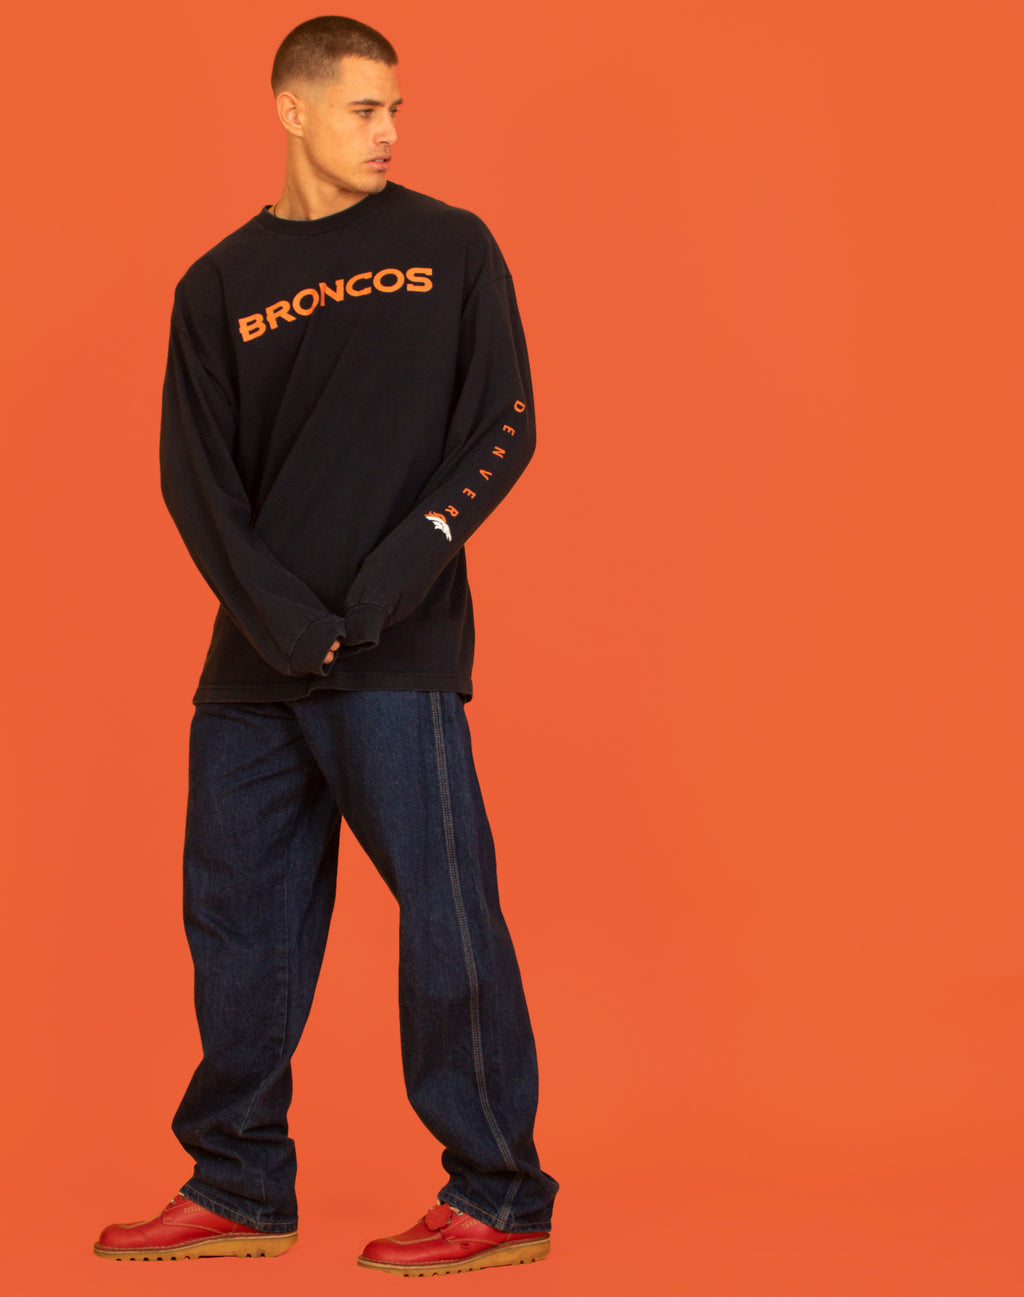 NFL BRONCOS LONG SLEEVE NAVY TEE